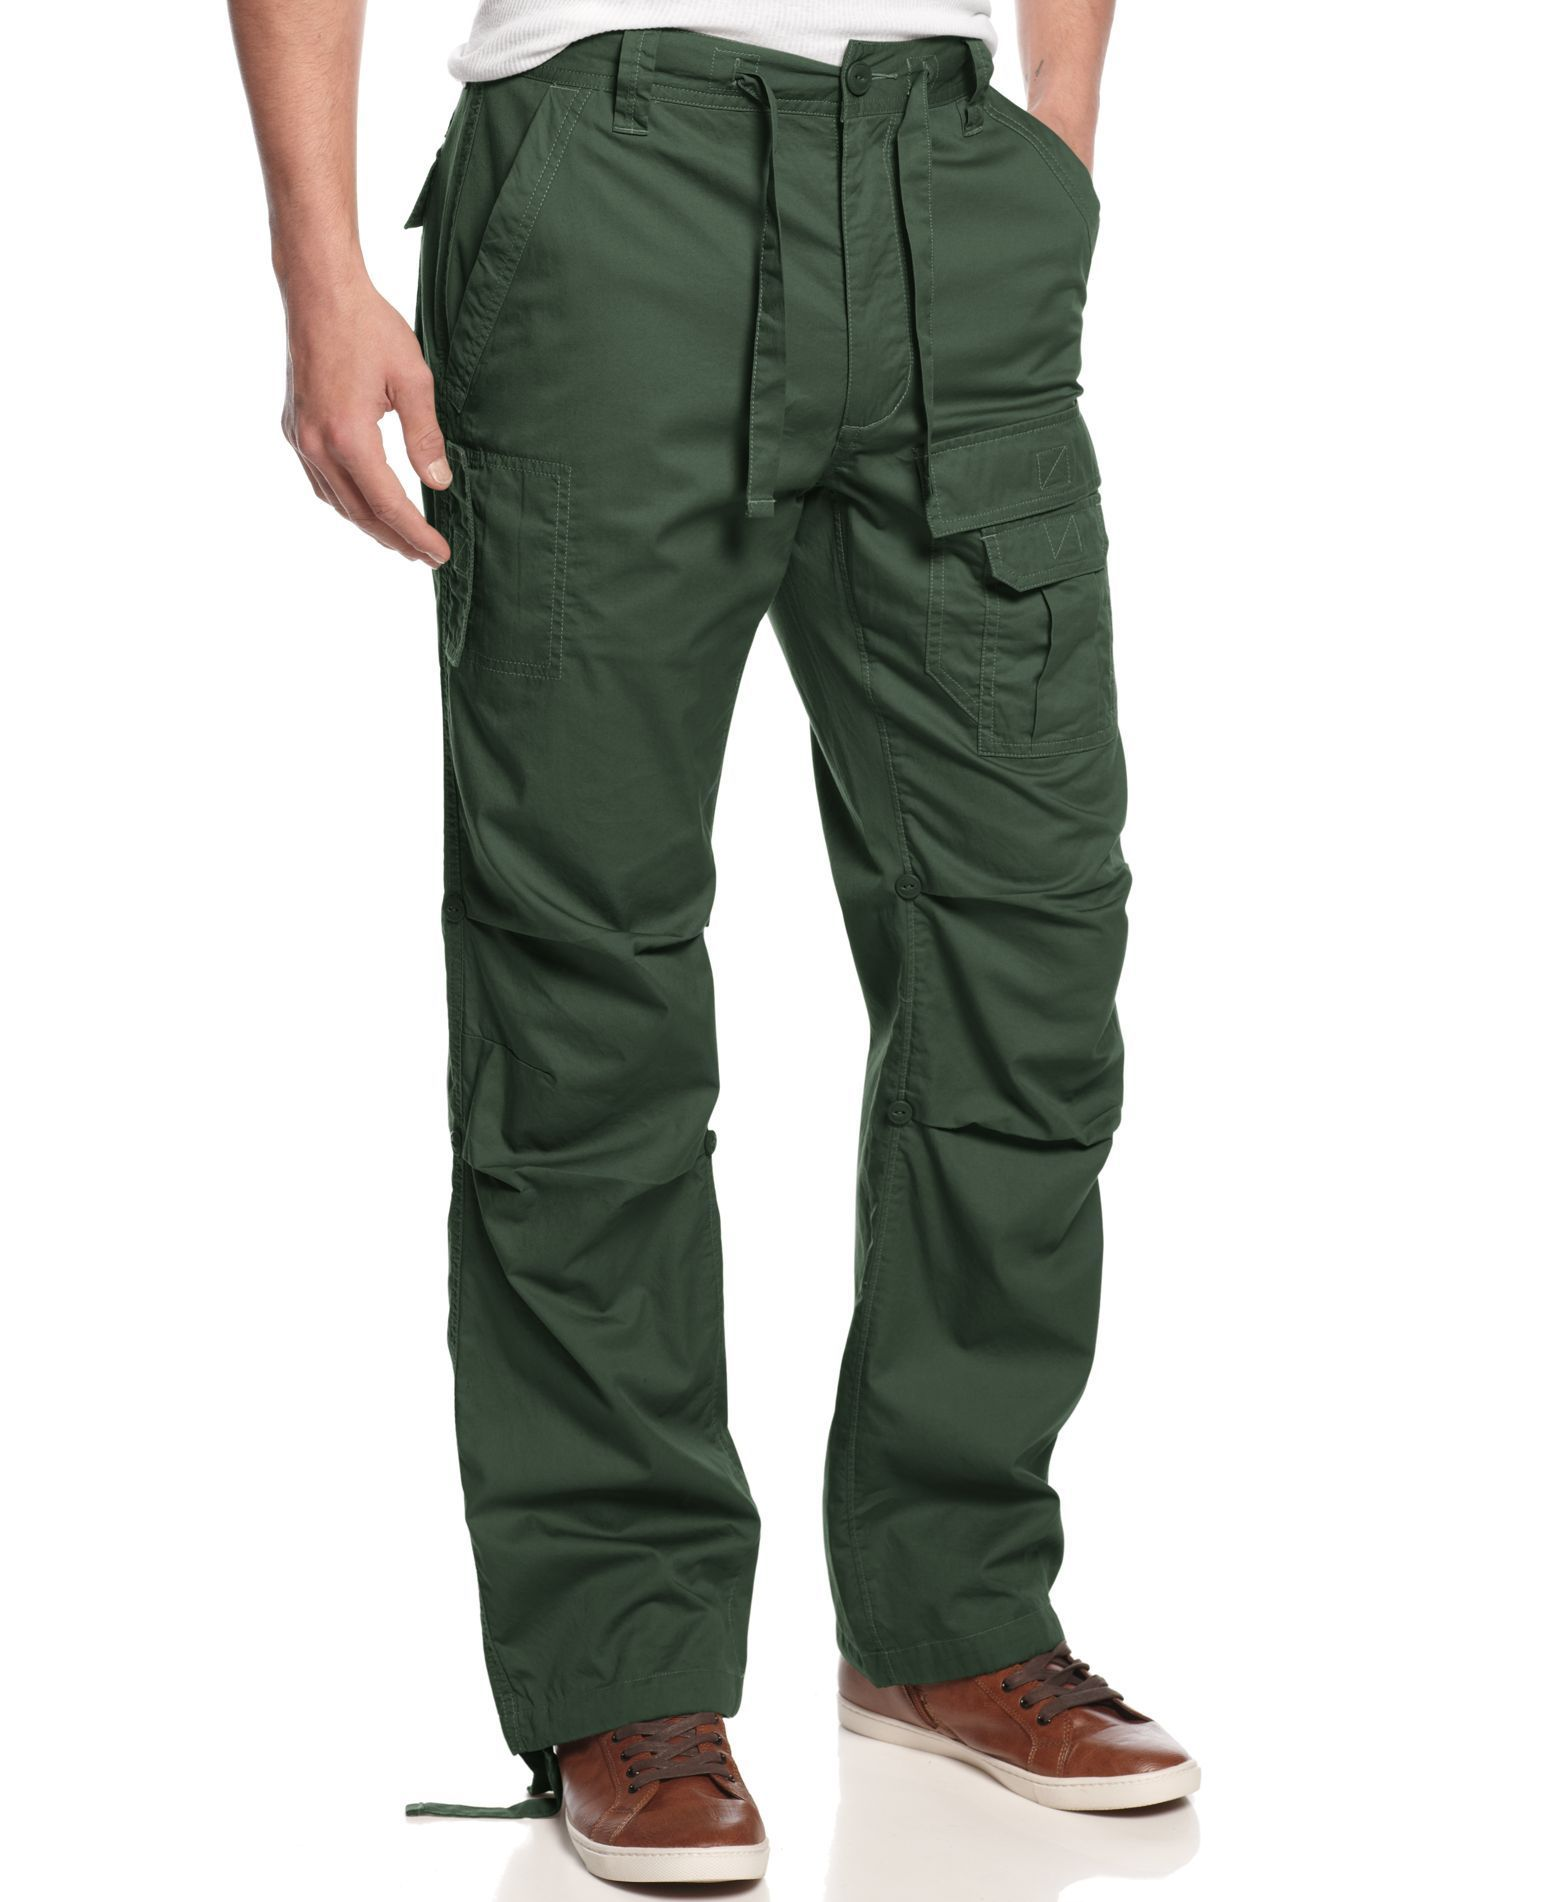 e40d59655af97 Safari style hits the streets with these casual and cool pants from Sean  John.